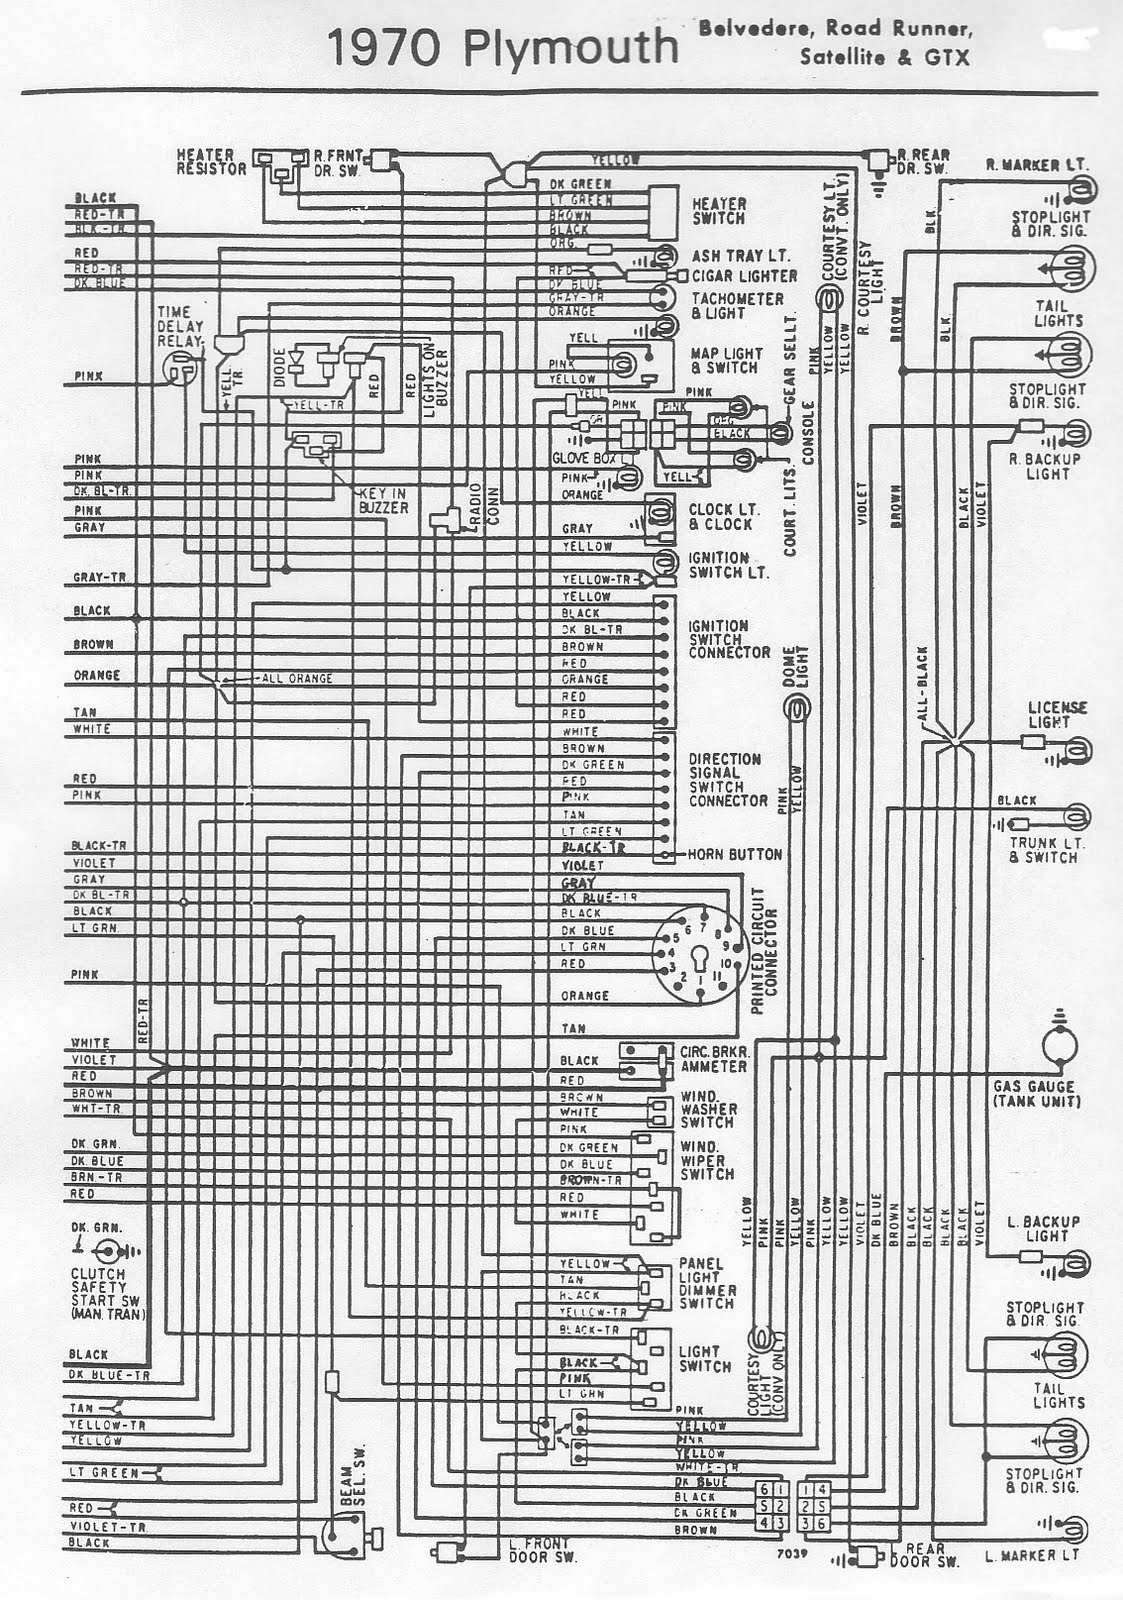 plymouth car ac wiring diagram example electrical wiring diagram u2022 rh cranejapan co 1965 Plymouth Barracuda Interior 1968 Plymouth Barracuda